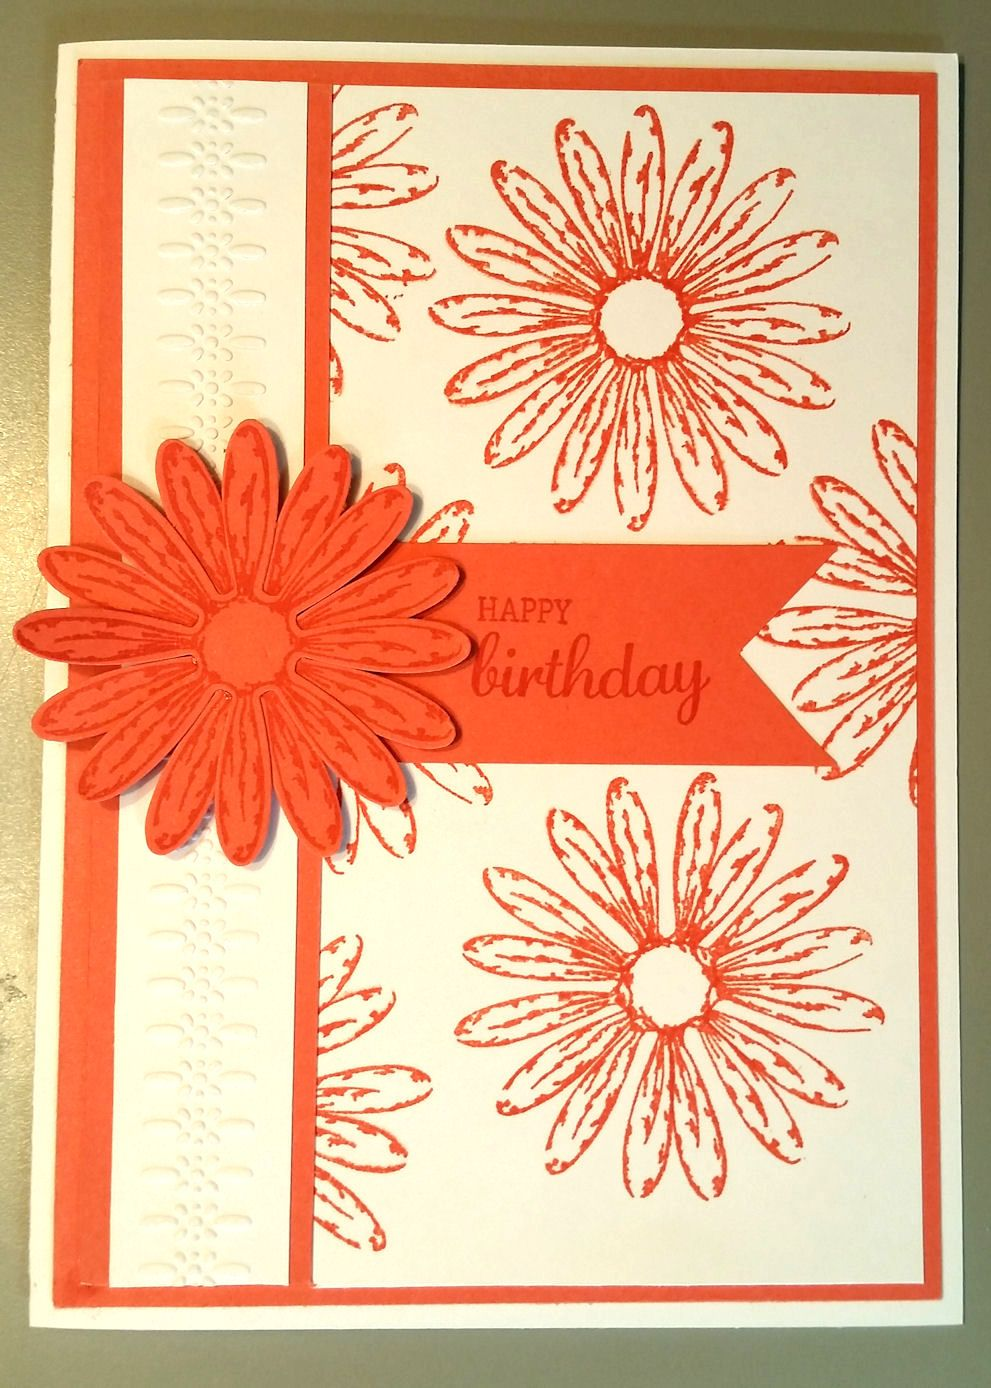 This birthday card was based on a pip by sandra from violet vs